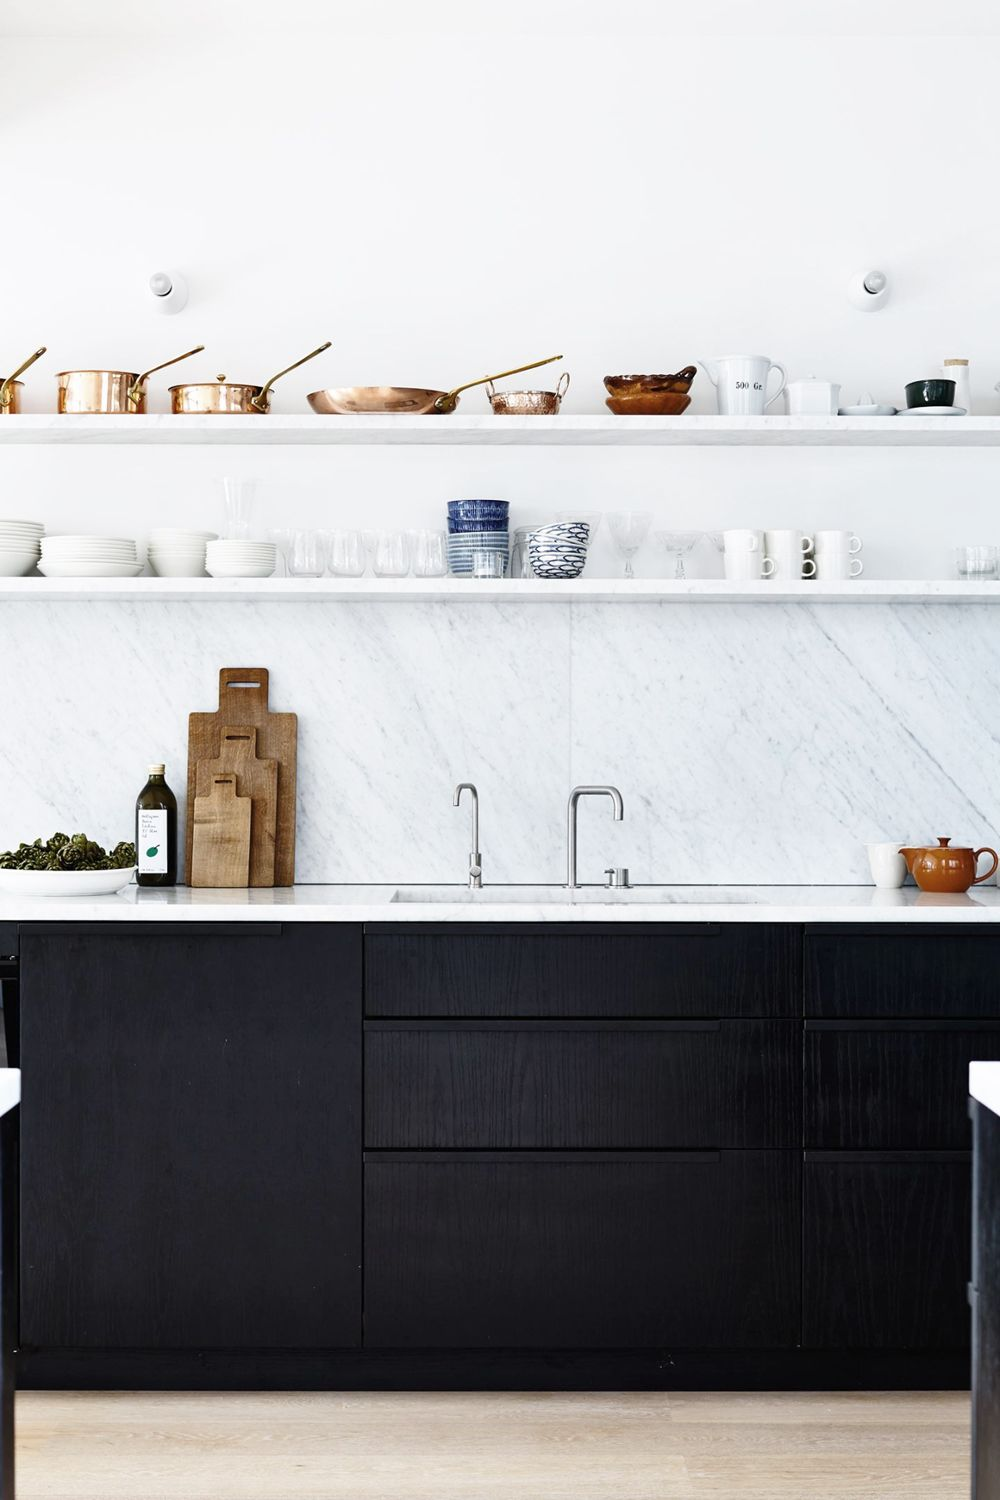 Great color combination of black and white kitchen kitchen ki